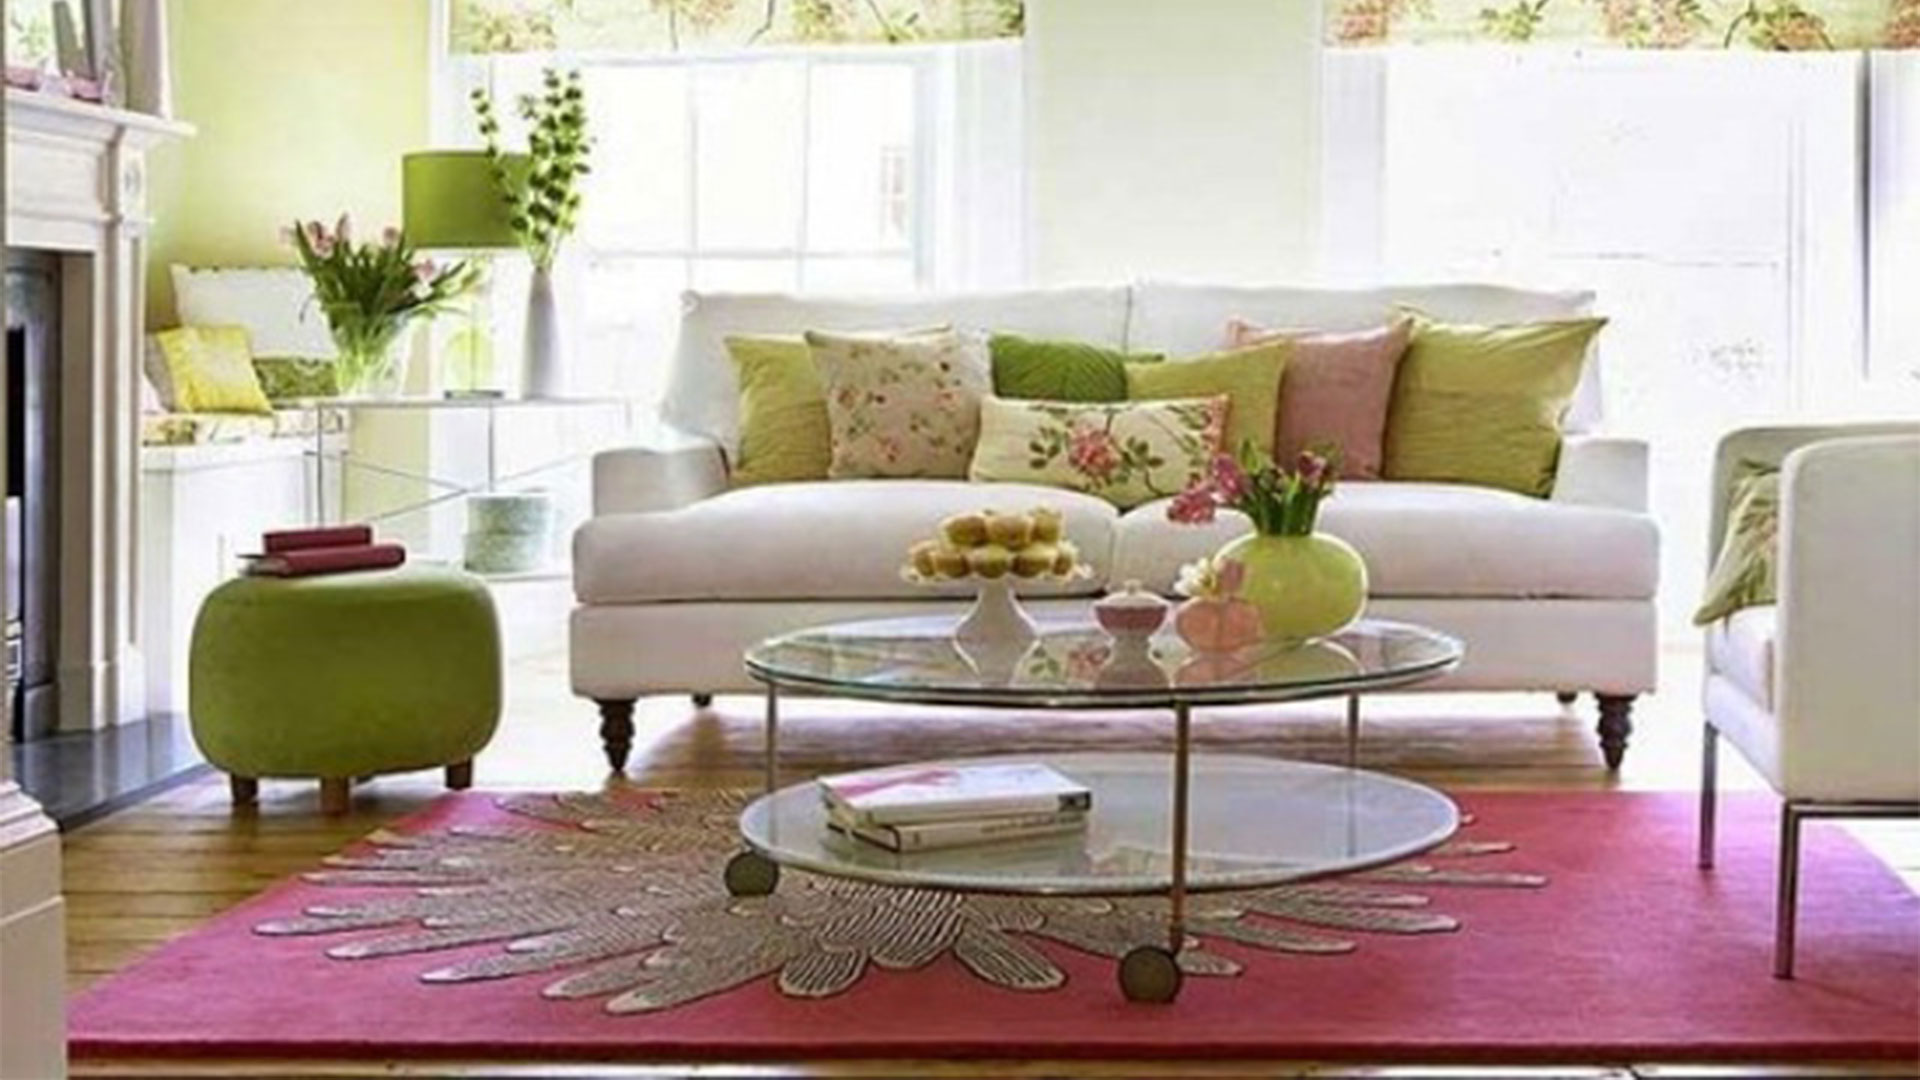 Home Decor Ideas For Living Room 36 Living Room Decorating Ideas That Smells Like Spring